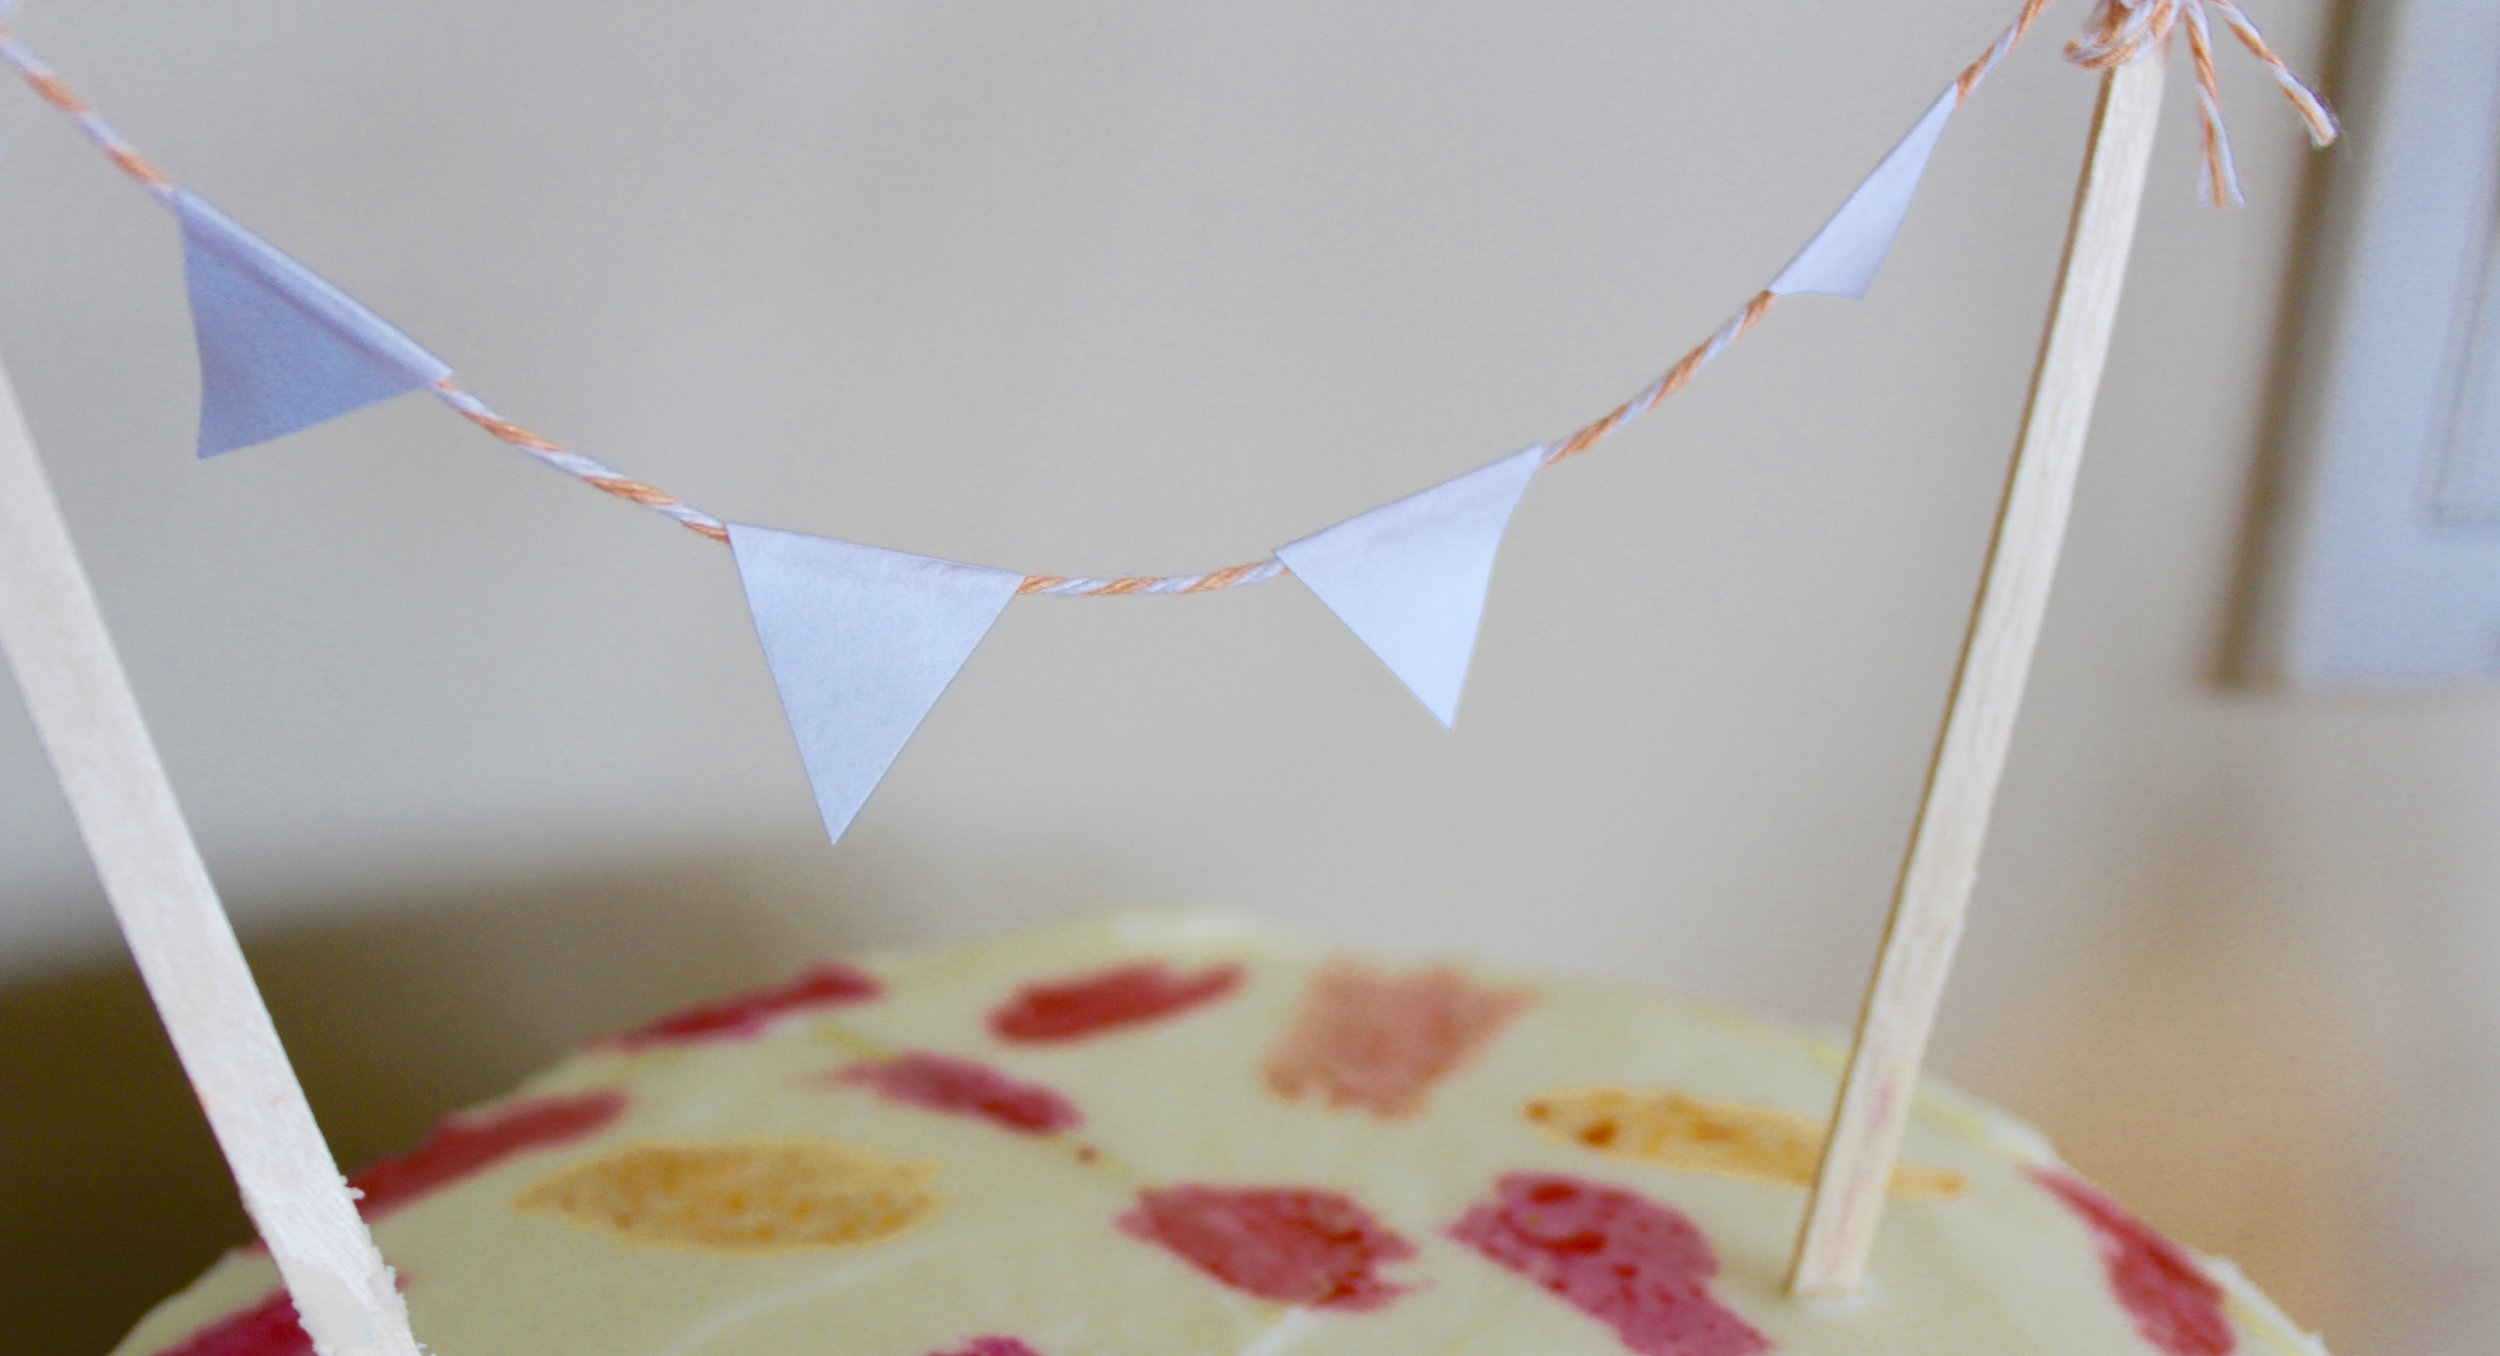 To make this bunting banner I took 2 coffee stirrers I had swiped from Starbucks and tied a small piece of embroidery floss between them. I cut out little triangles of white paper and glued them onto the floss.